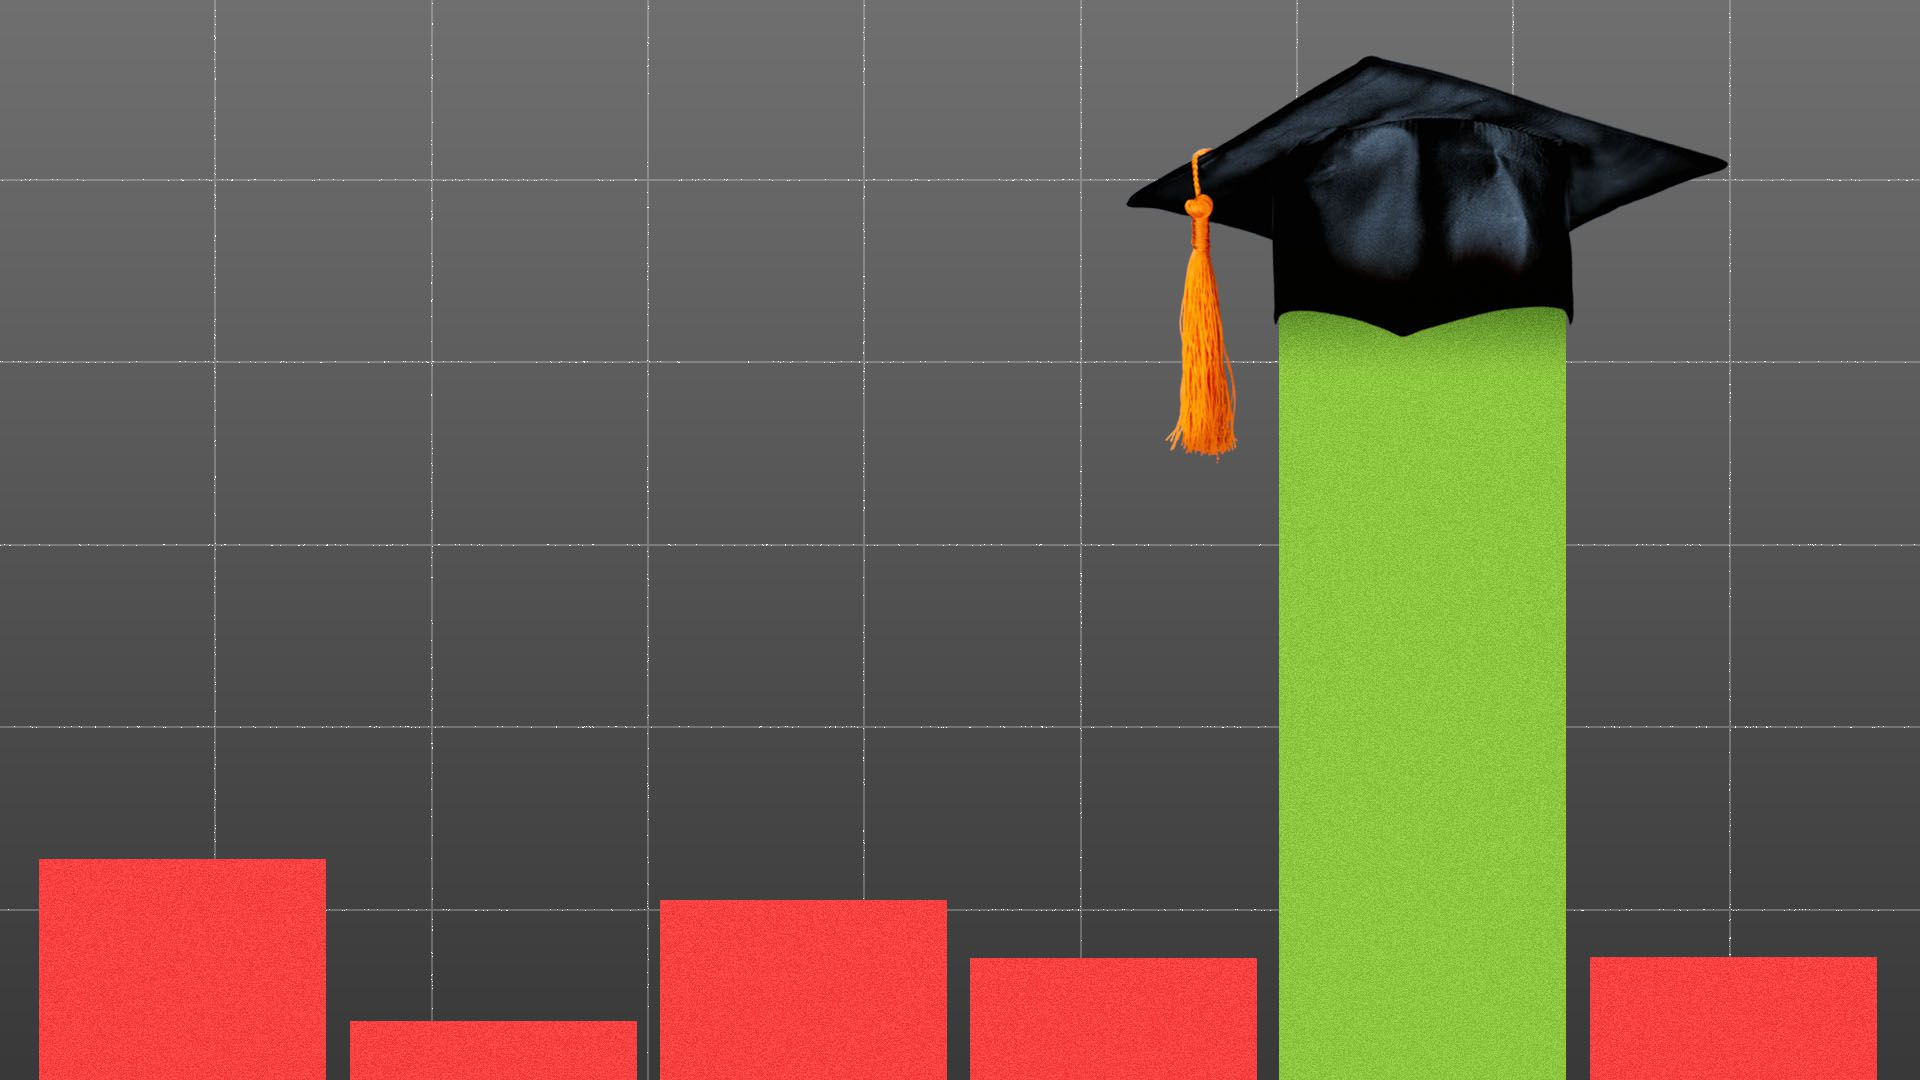 llustration of a bar chart with the highest bar sporting a college graduation cap